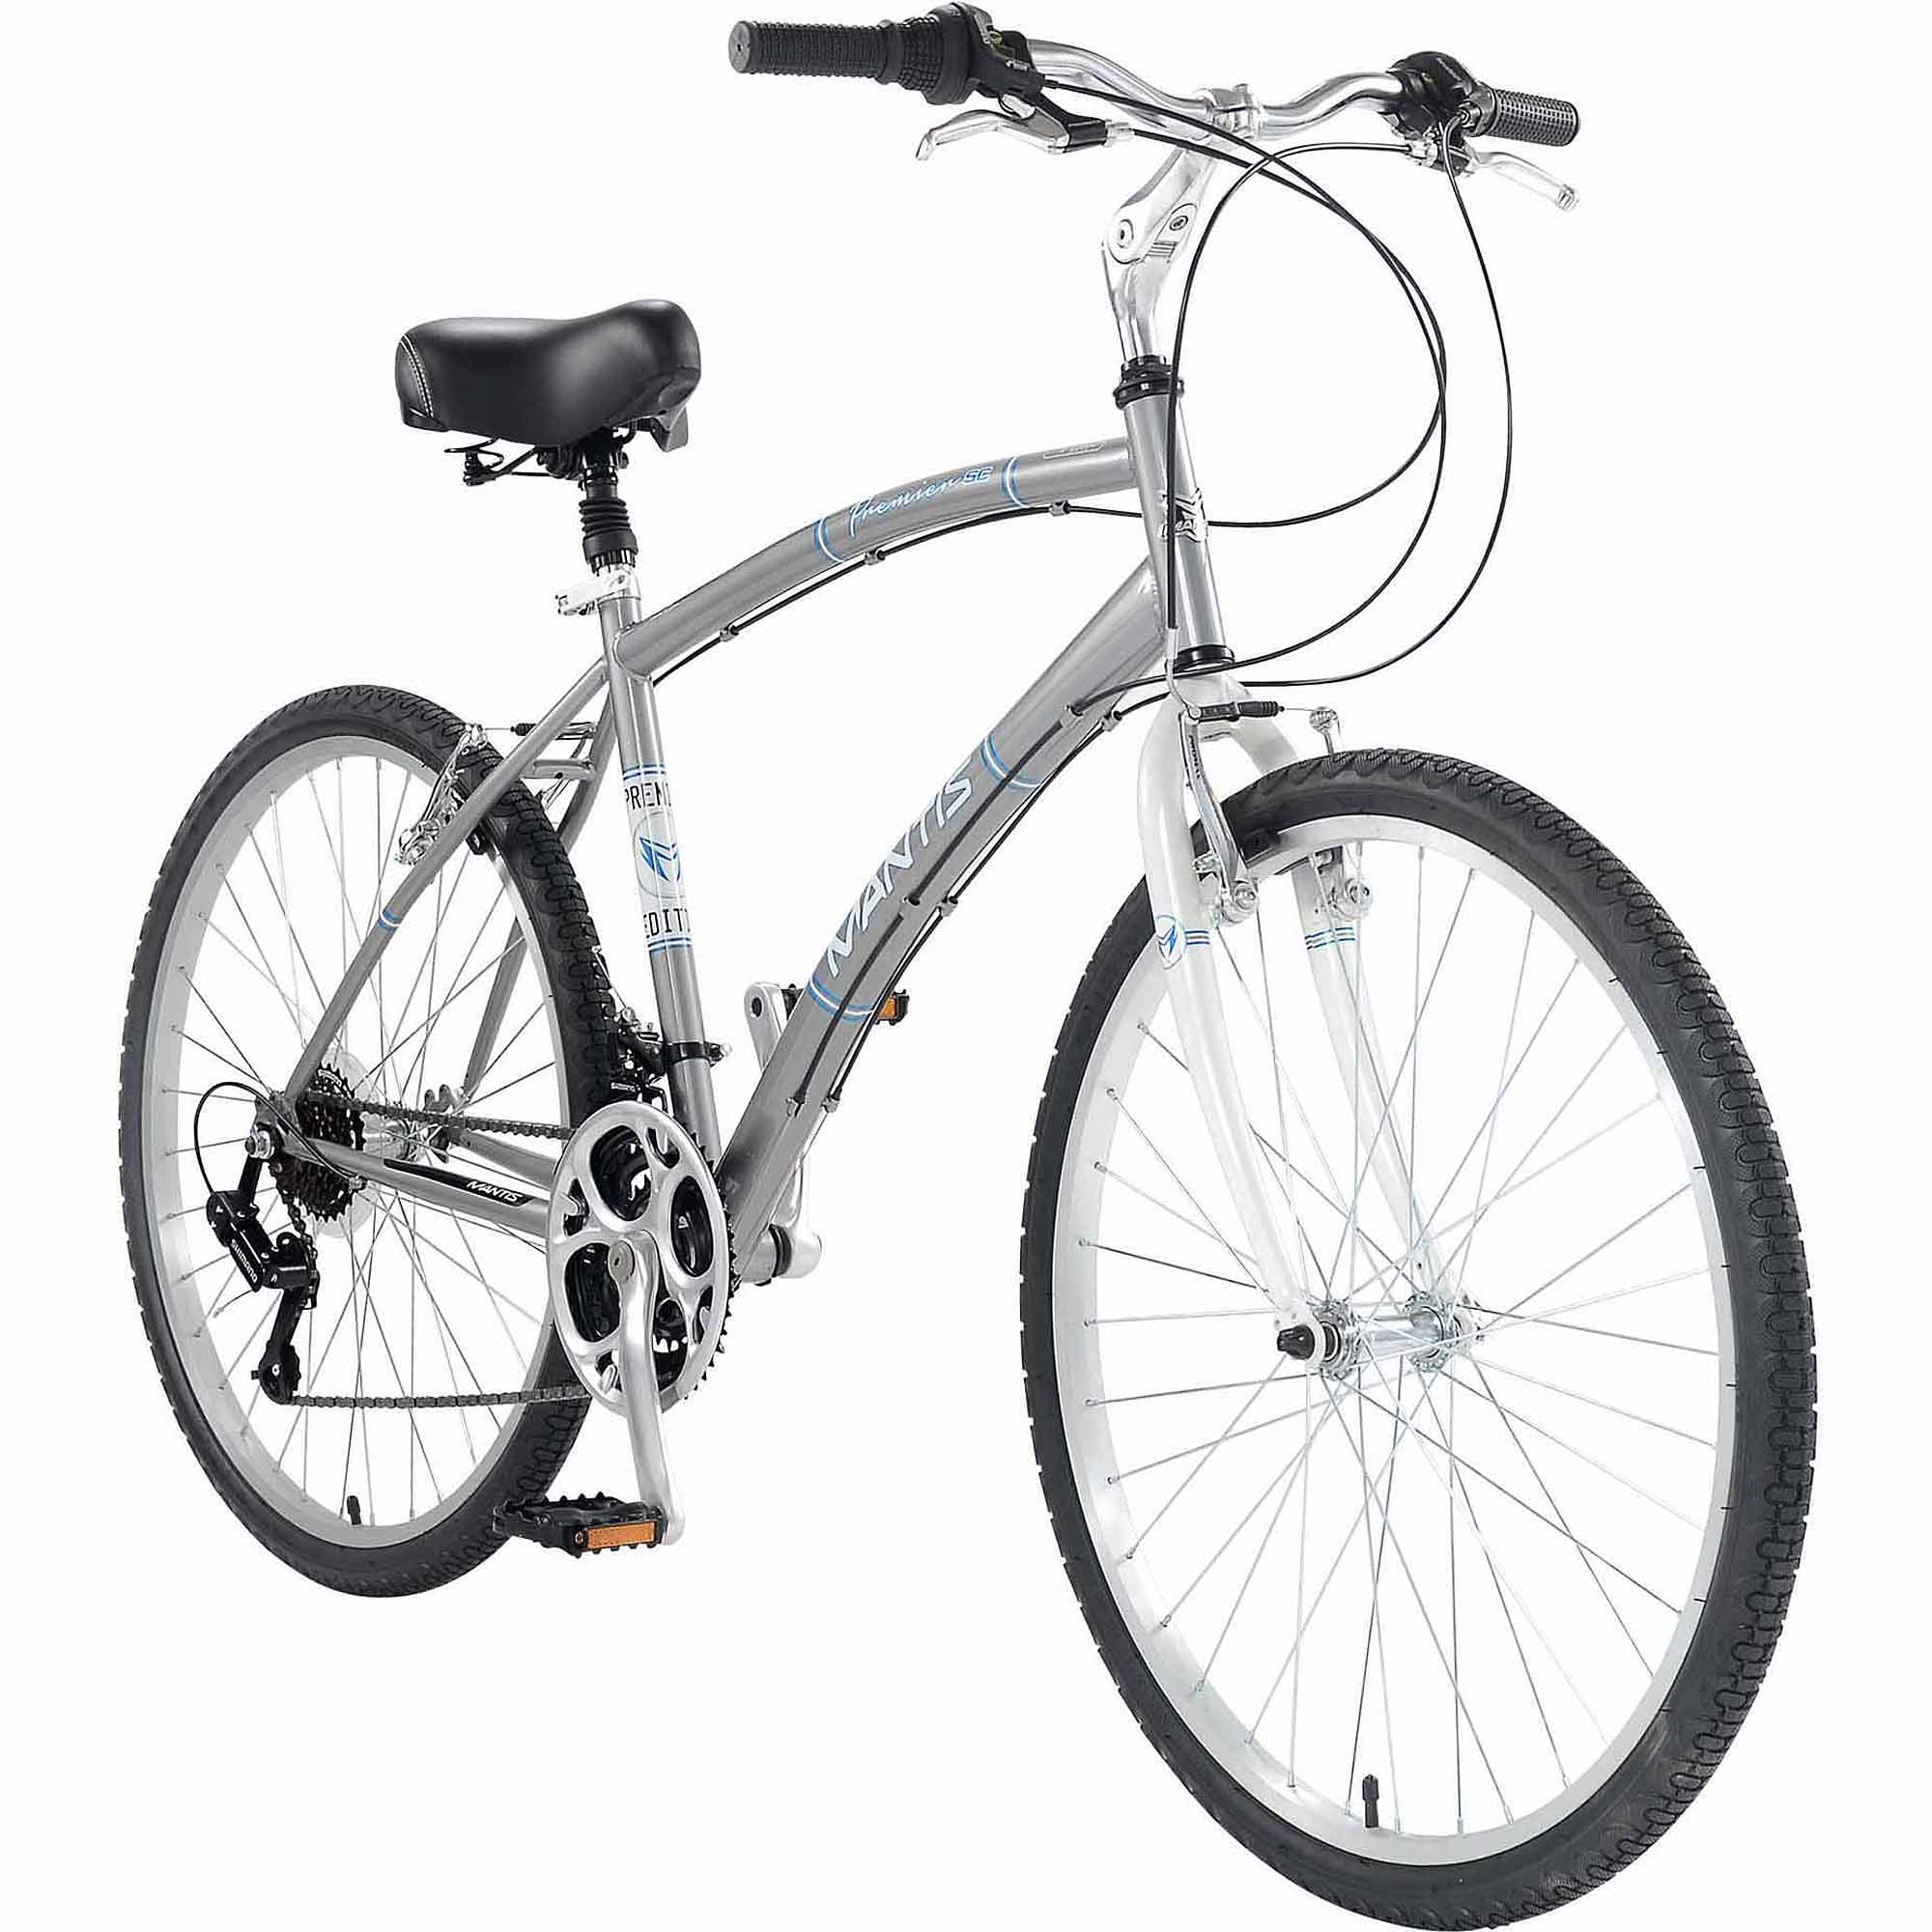 Mantis Premier 726M Comfort Bicycle